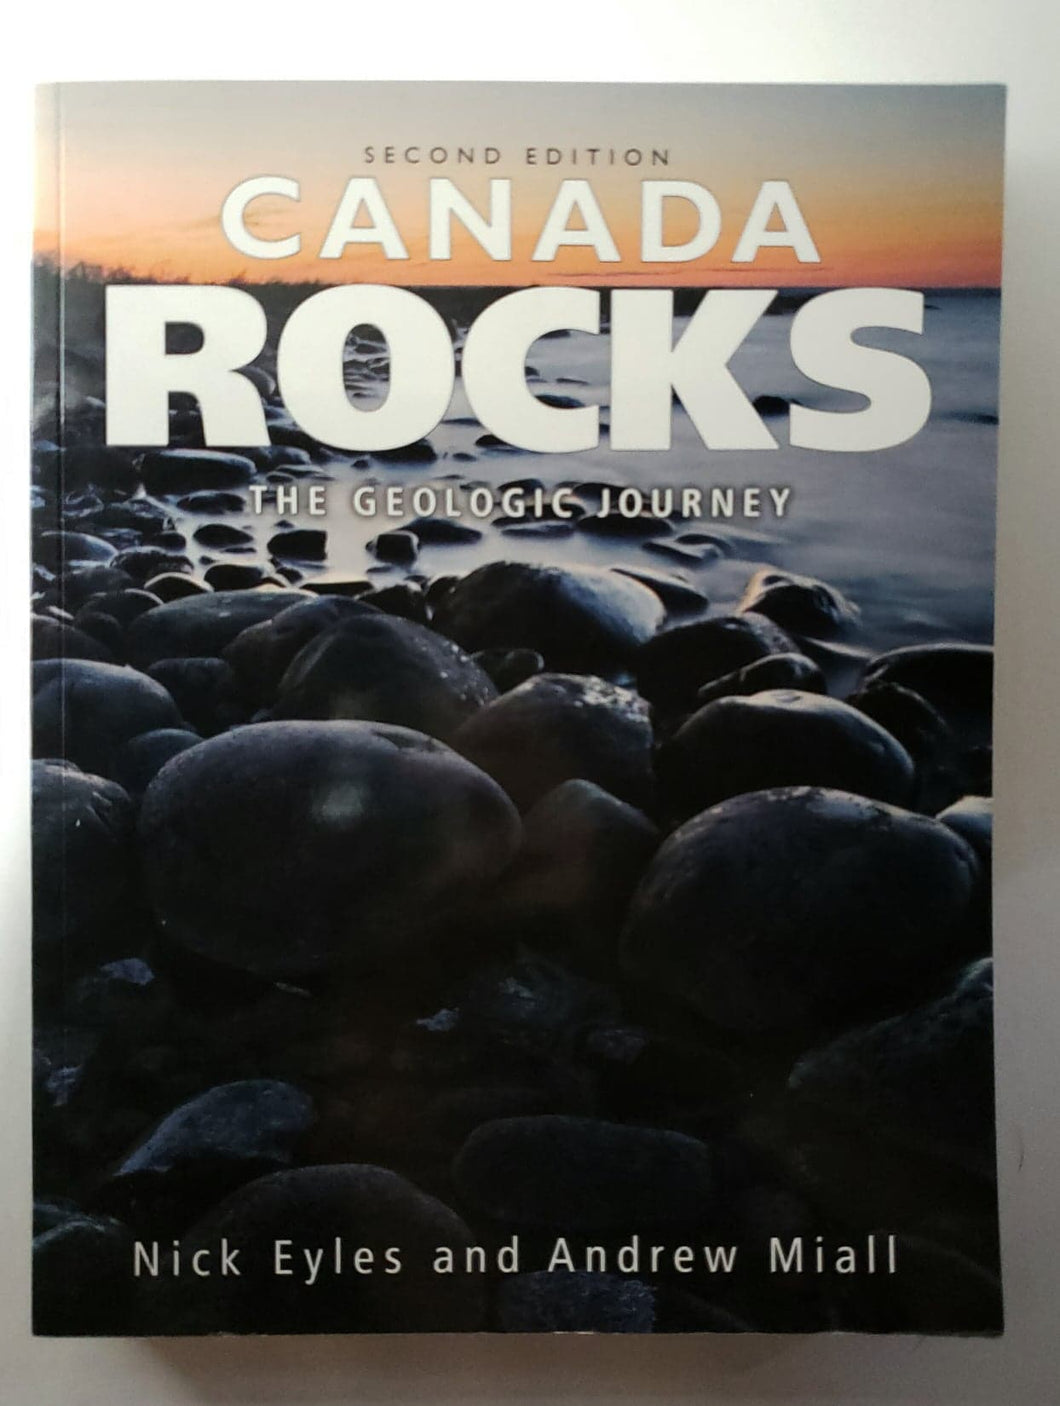 Canada Rocks: The Geological Journey Second Edition